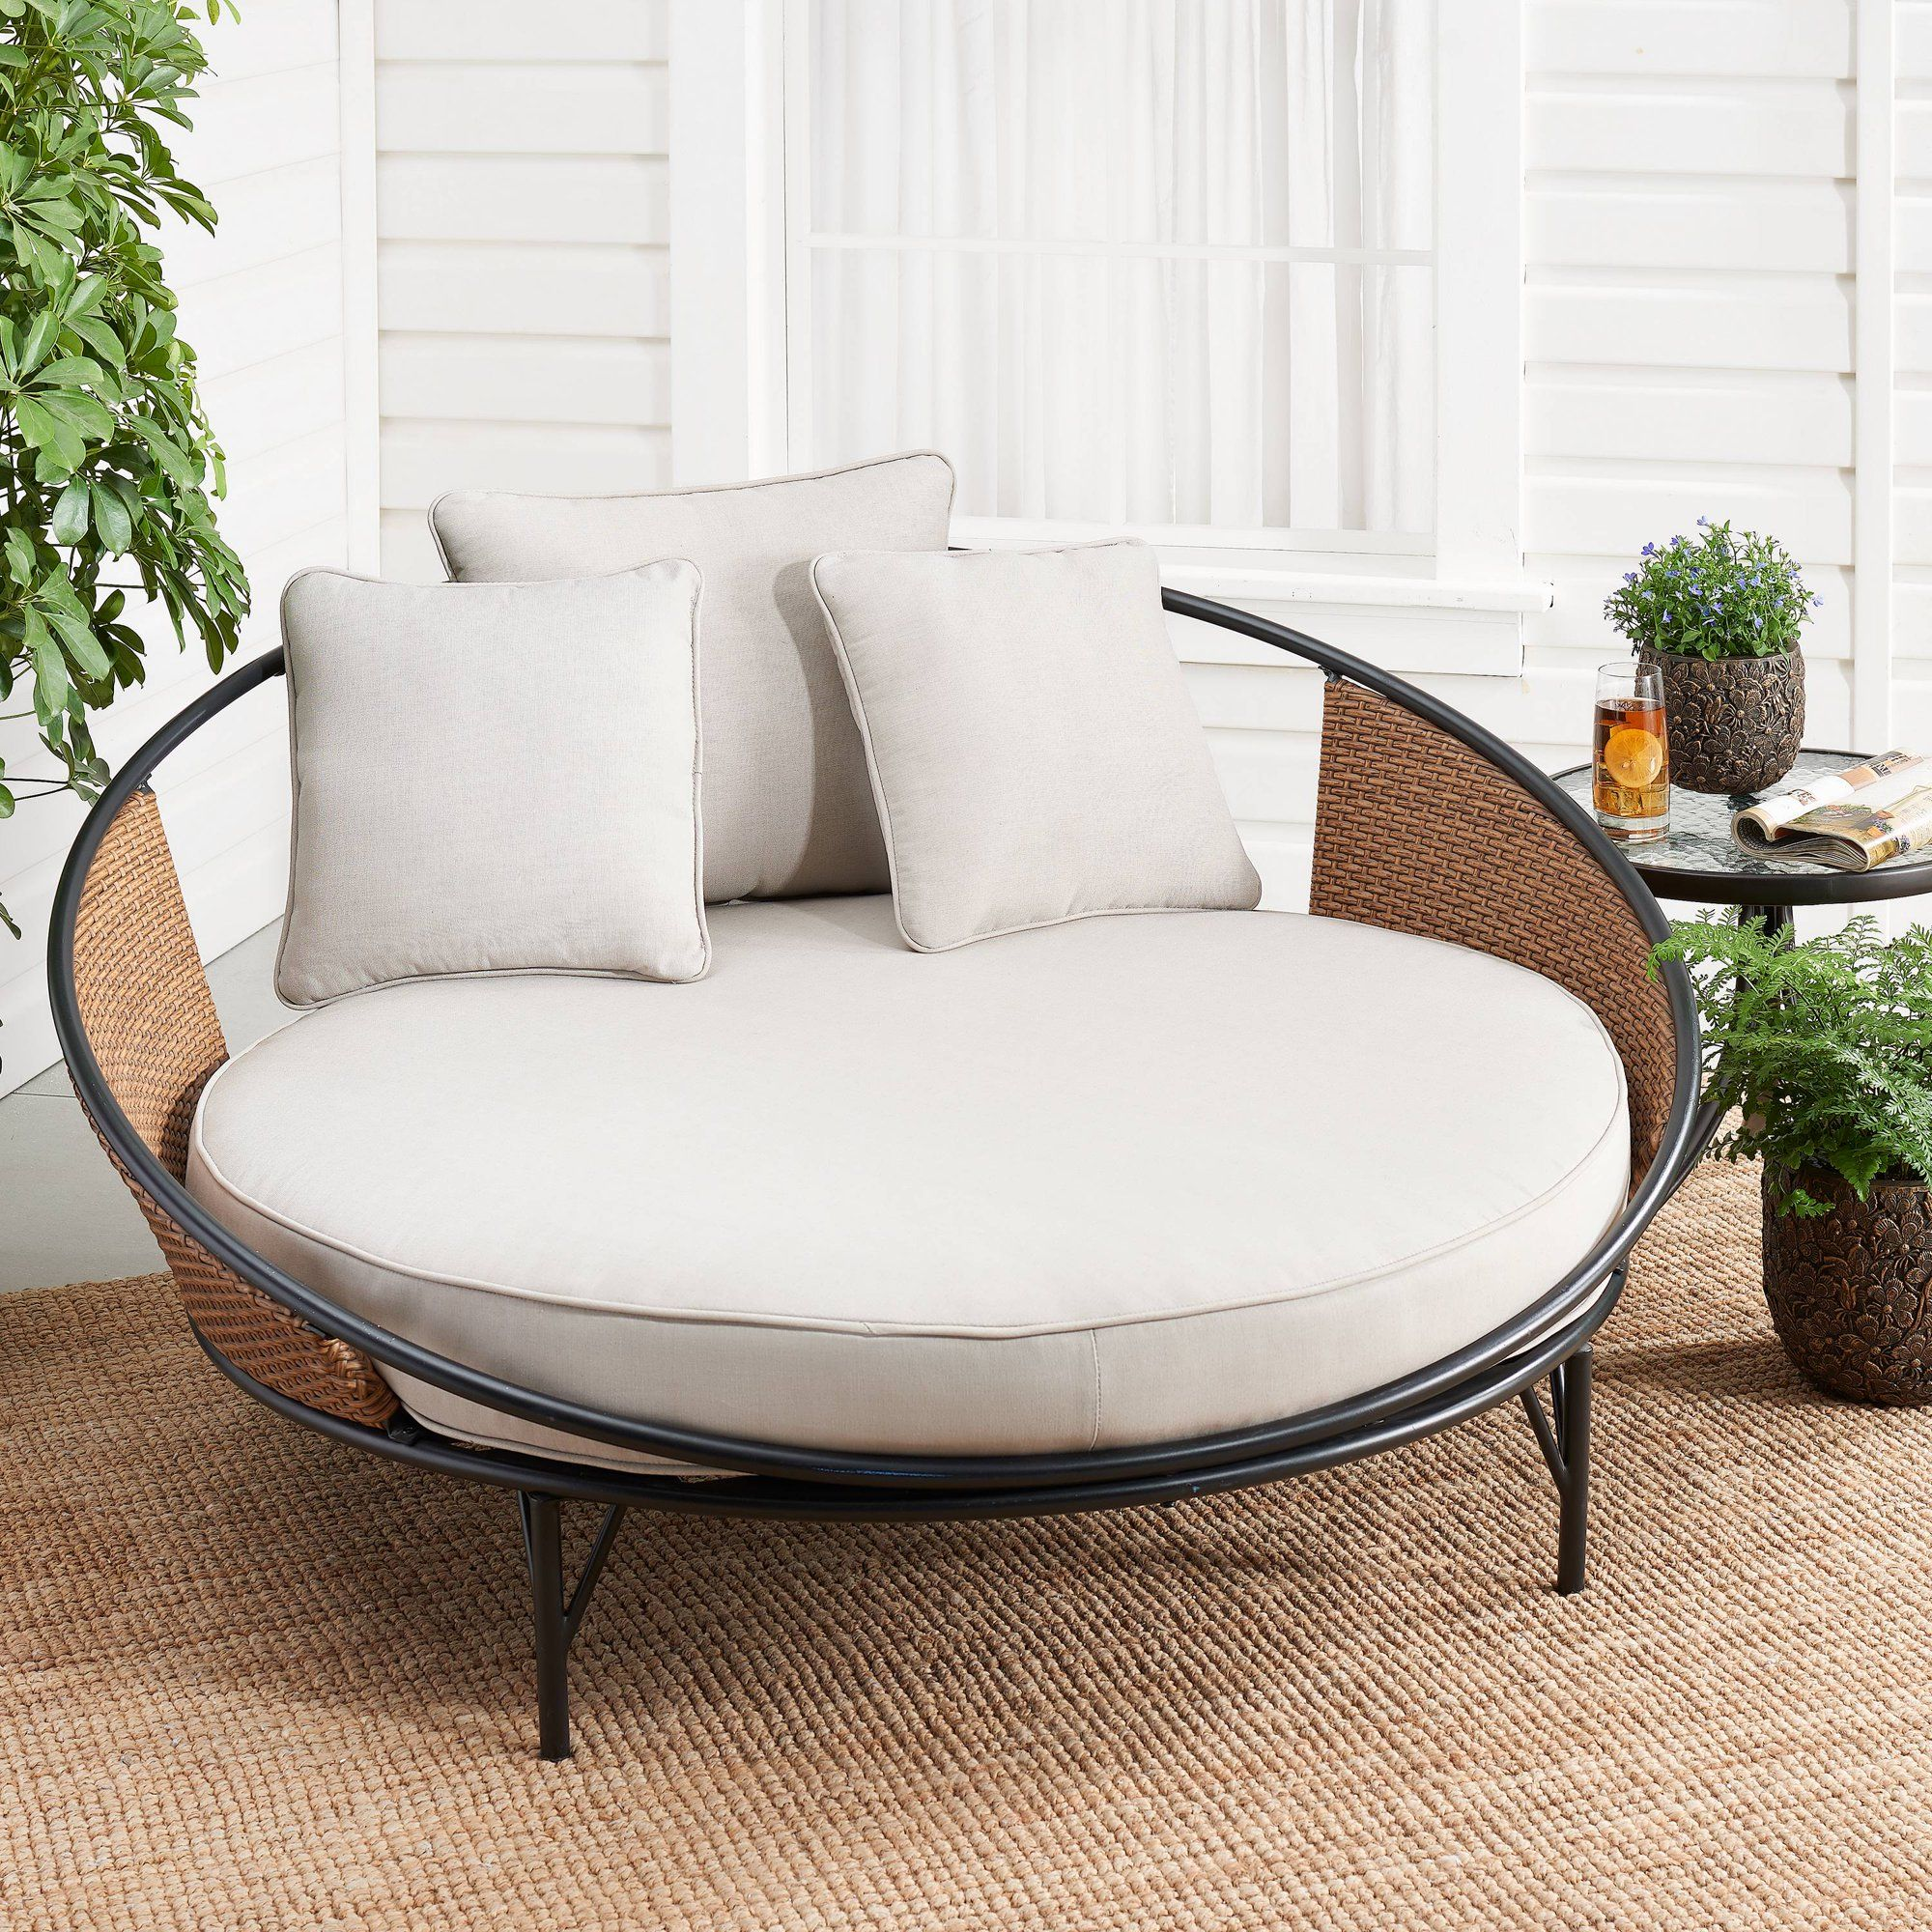 Mainstays Holcomb Outdoor Metal And Wicker Round Daybed Walmart Com In 2020 Comfortable Outdoor Chairs Metal Outdoor Chairs Outdoor Daybed